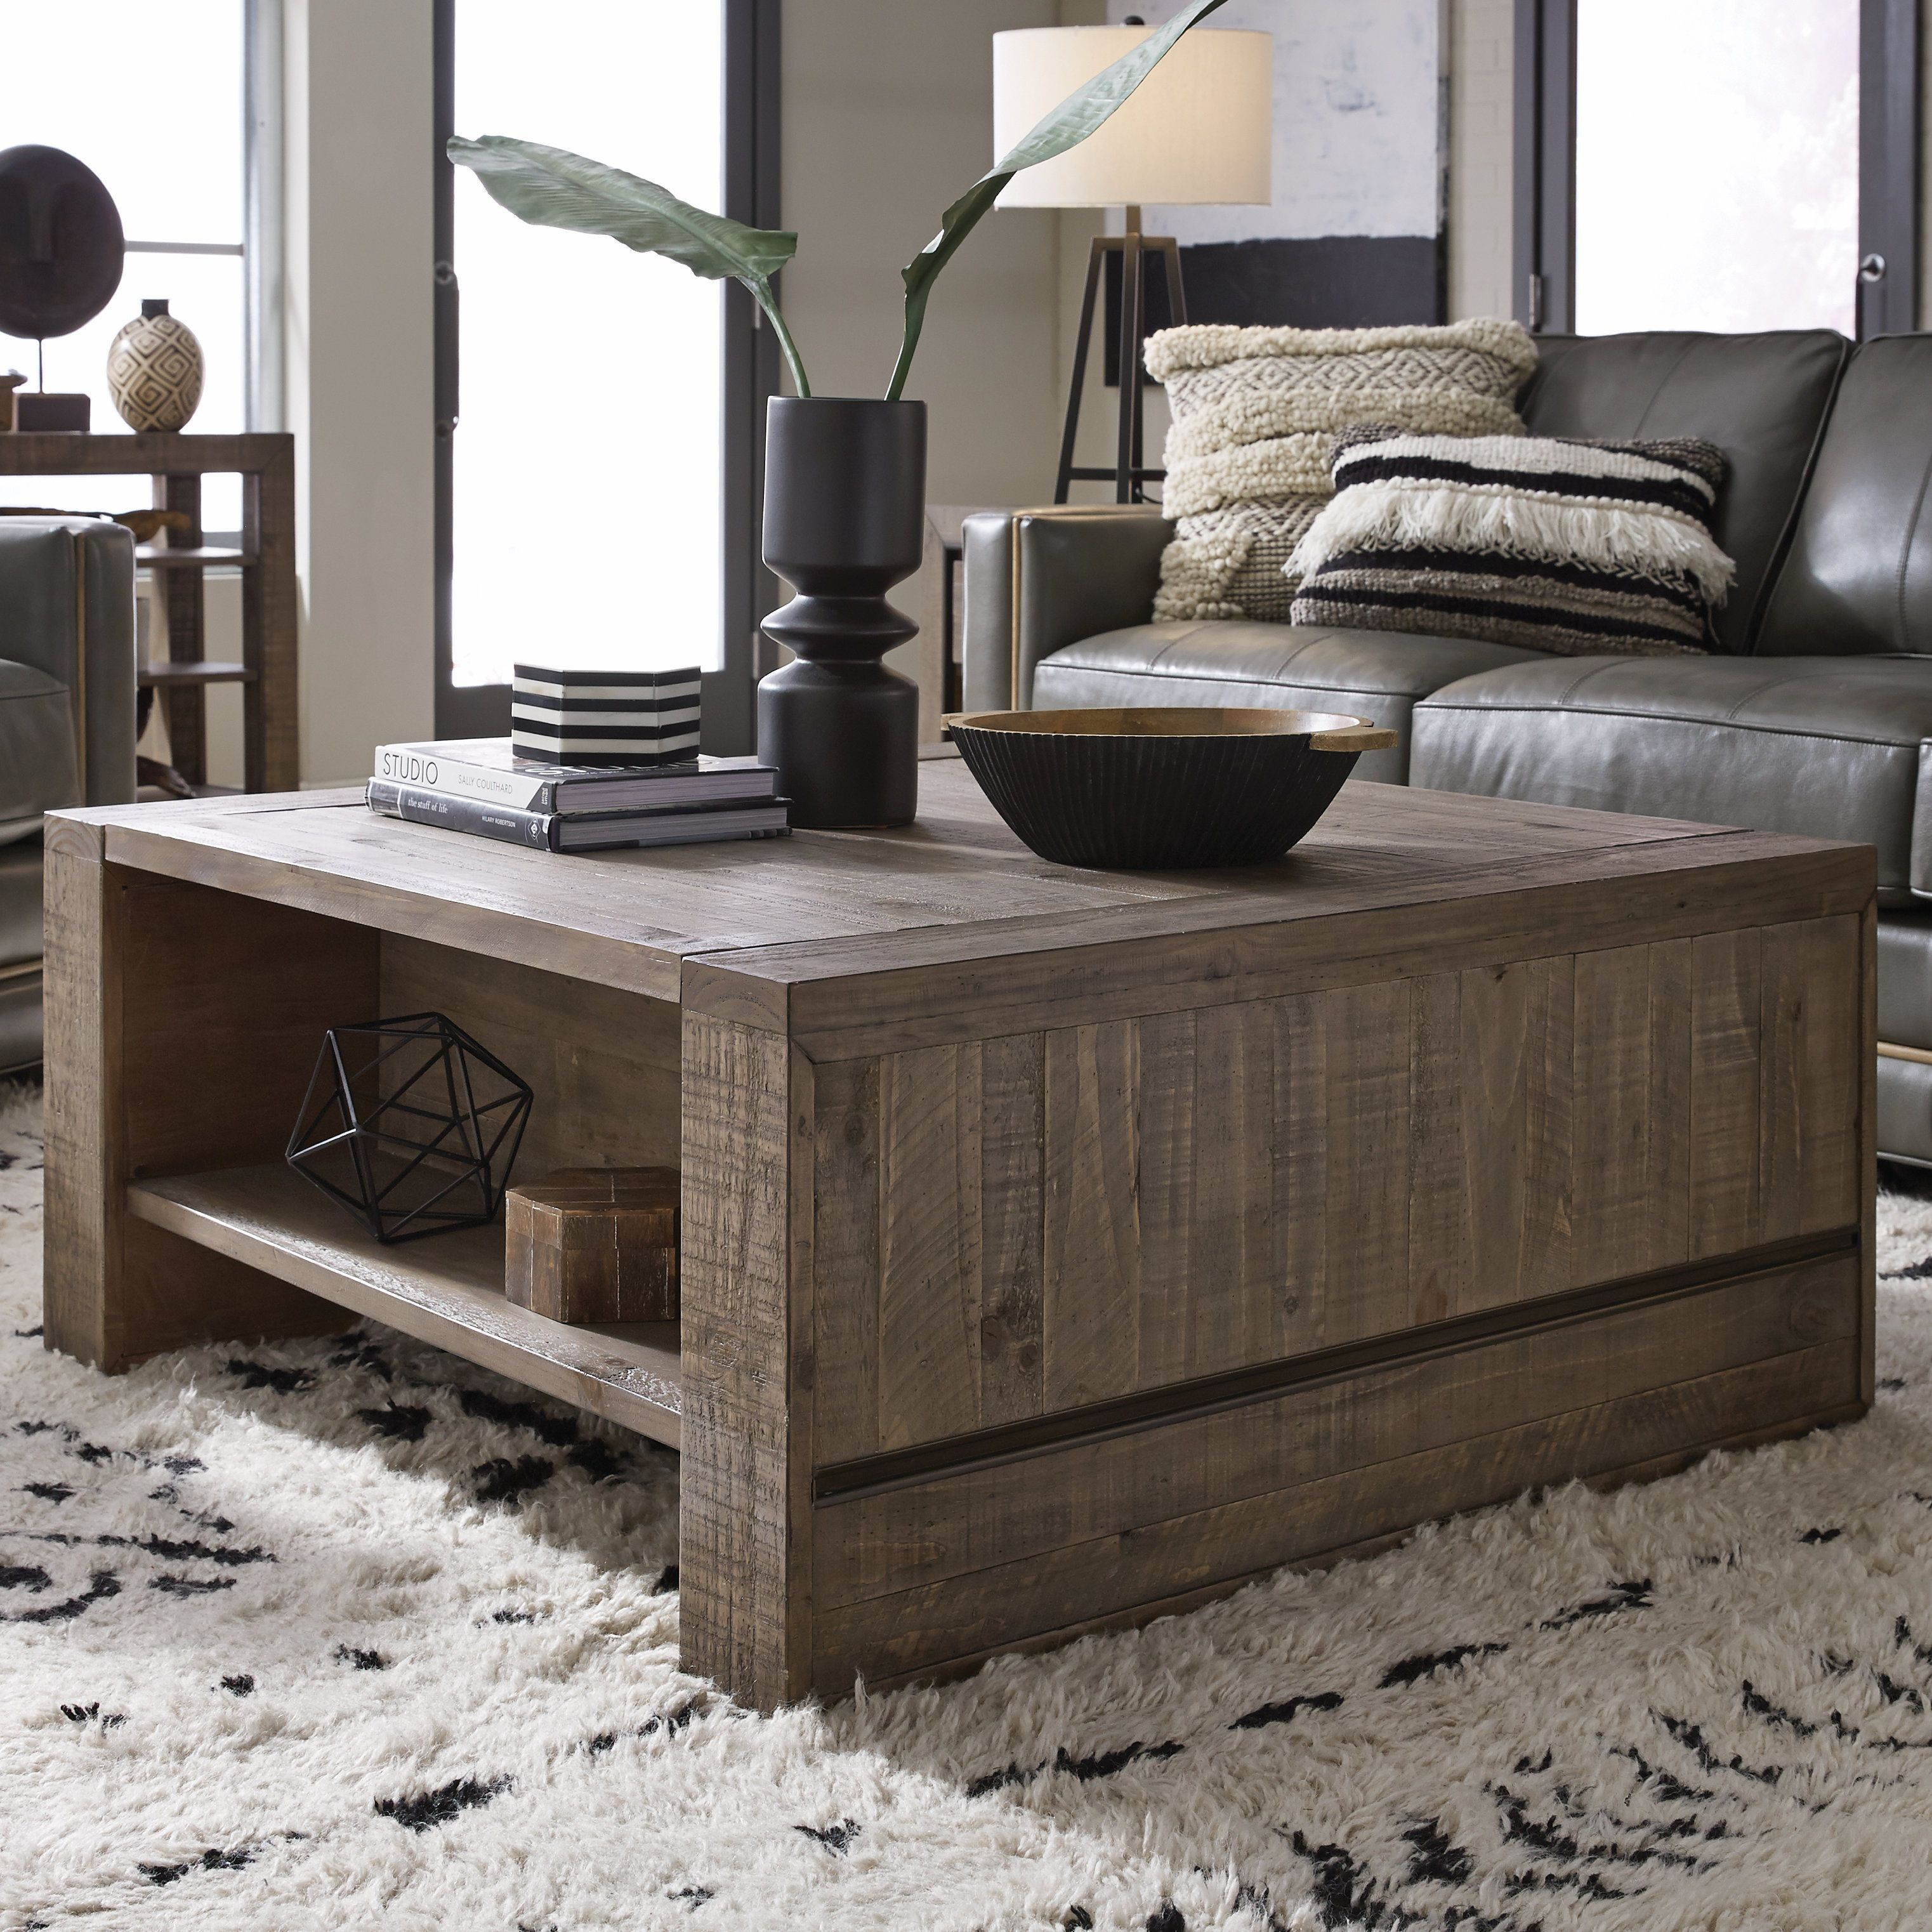 21 High Quality Lift Top Coffee Table Interior Design For You Think Of How You Want To Use The Table Y Coffee Table Lift Top Coffee Table Coffee Table Square [ jpg ]